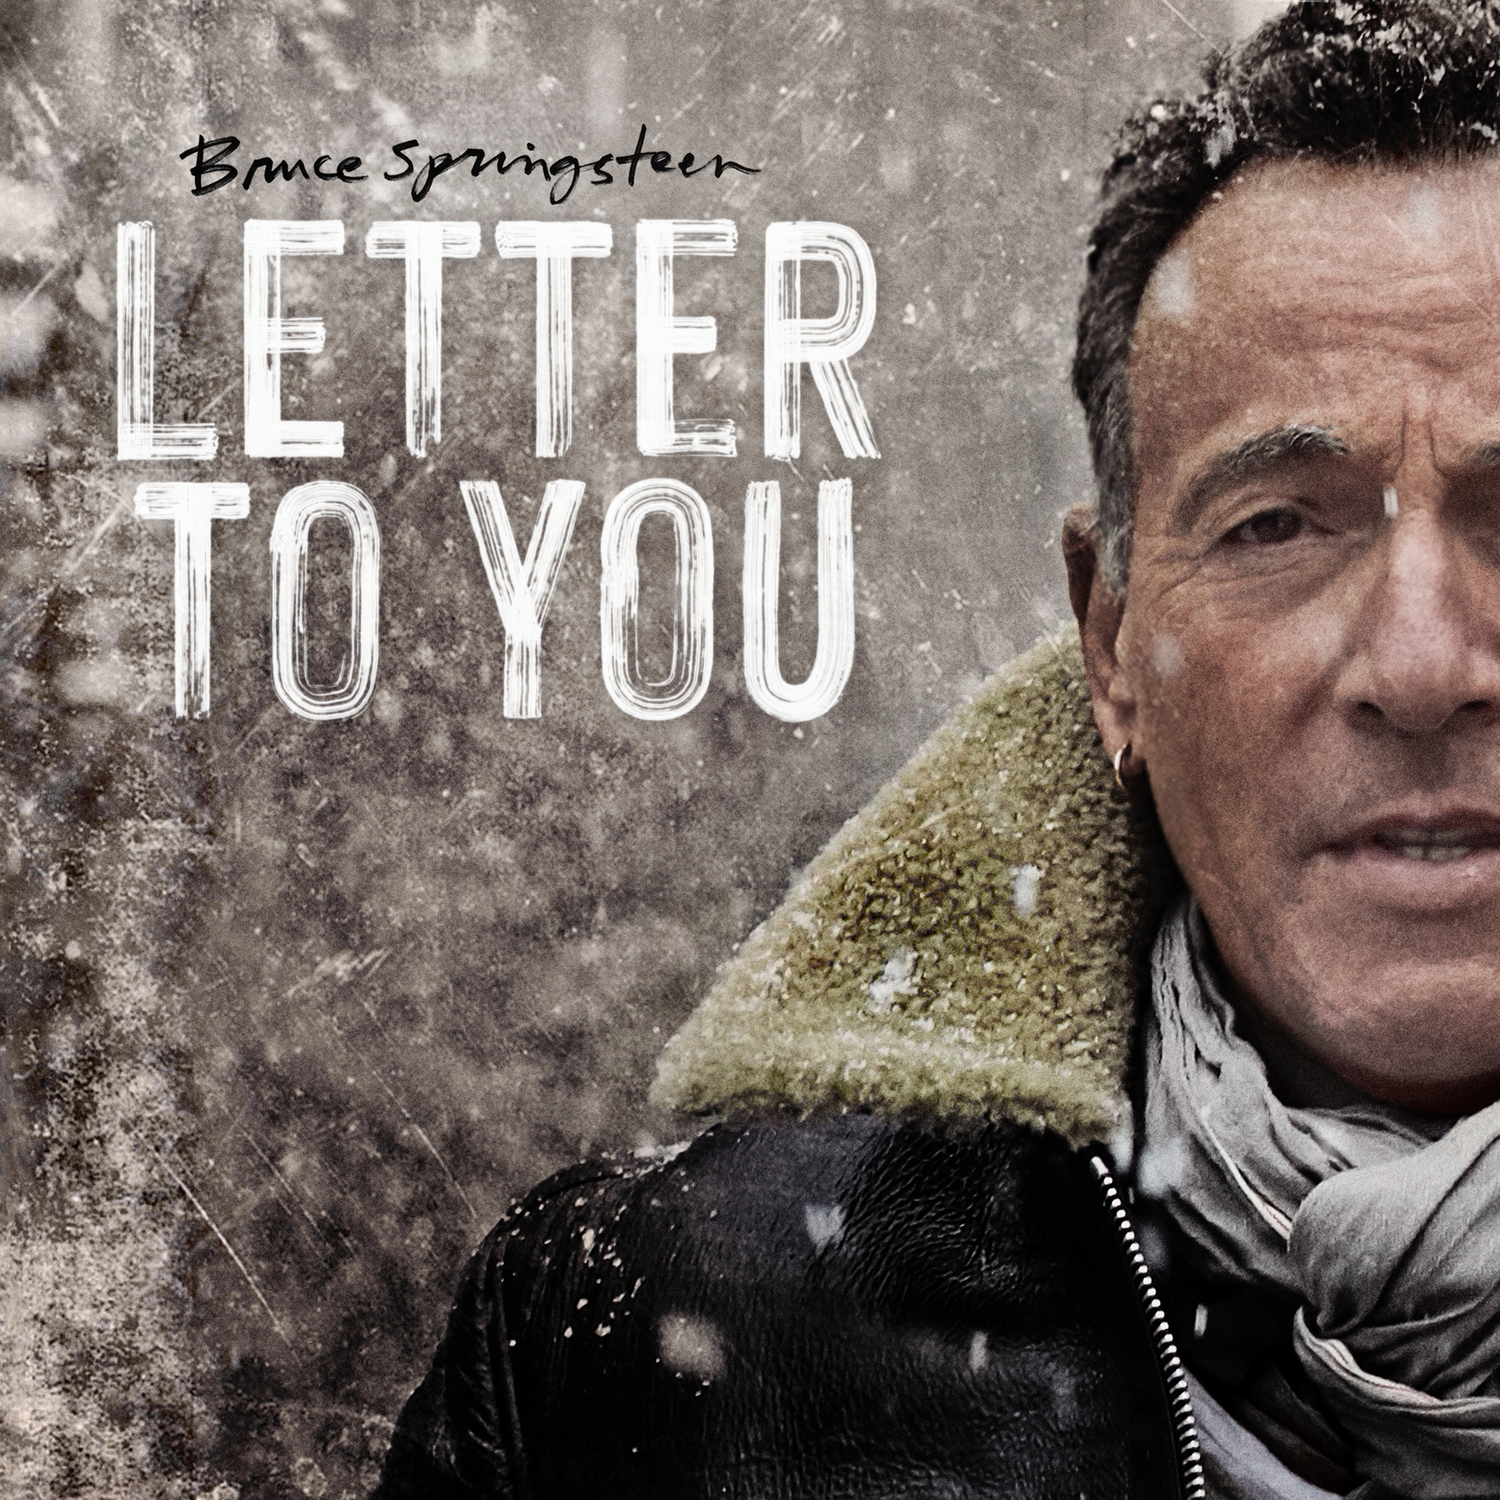 Bruce Springsteen Letter To You 2LP